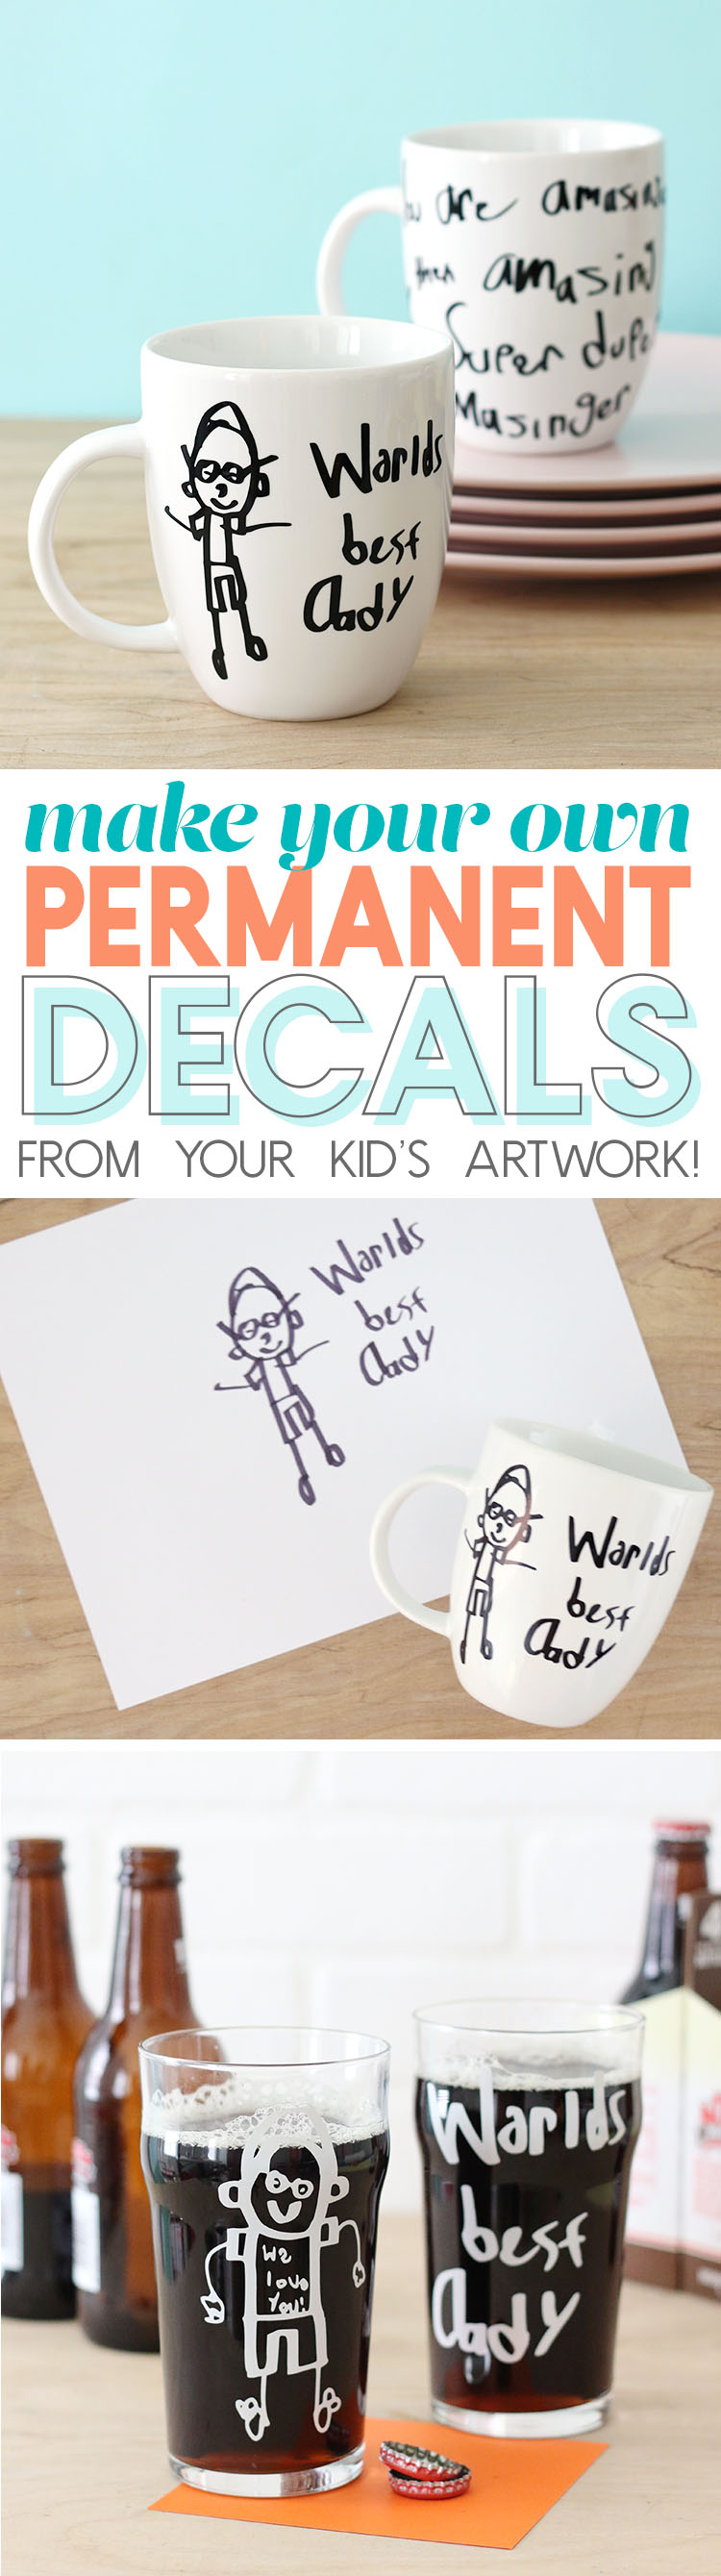 DIY Father's Day Gift Idea - turn your child's artwork into permanent designs on mugs or cups